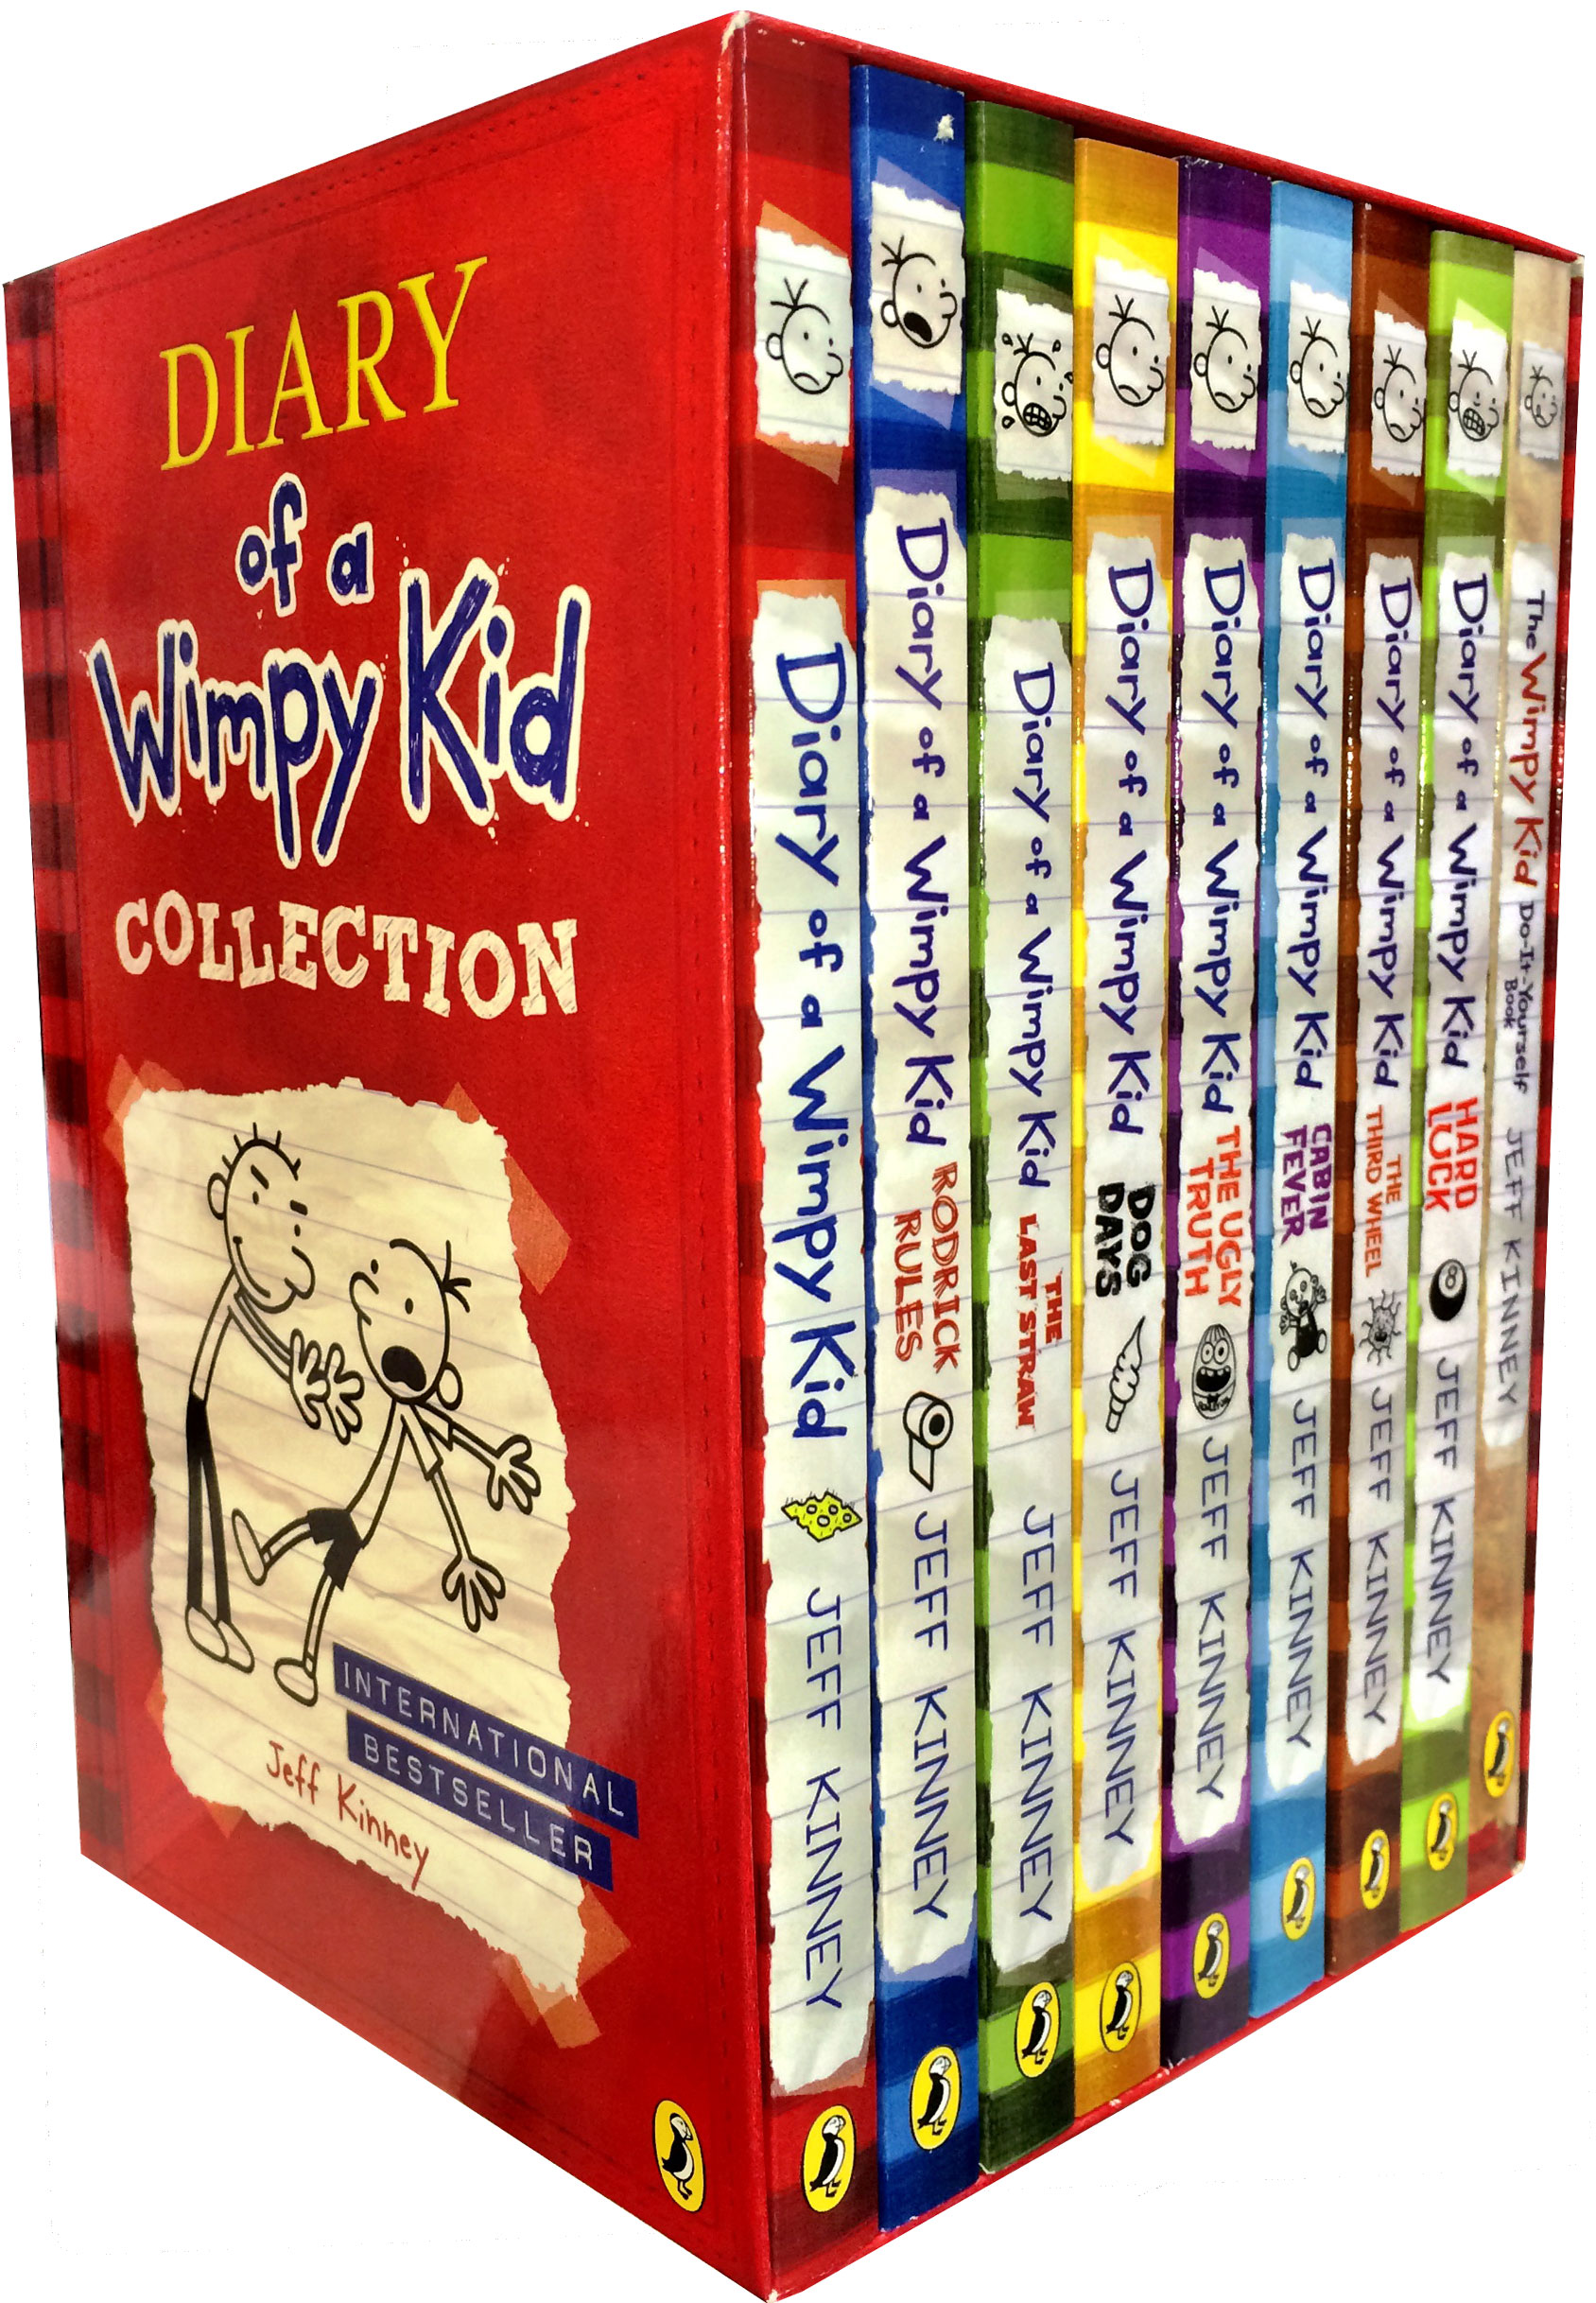 9 Books Set Diary of a Wimpy Kid Collection Third Wheel